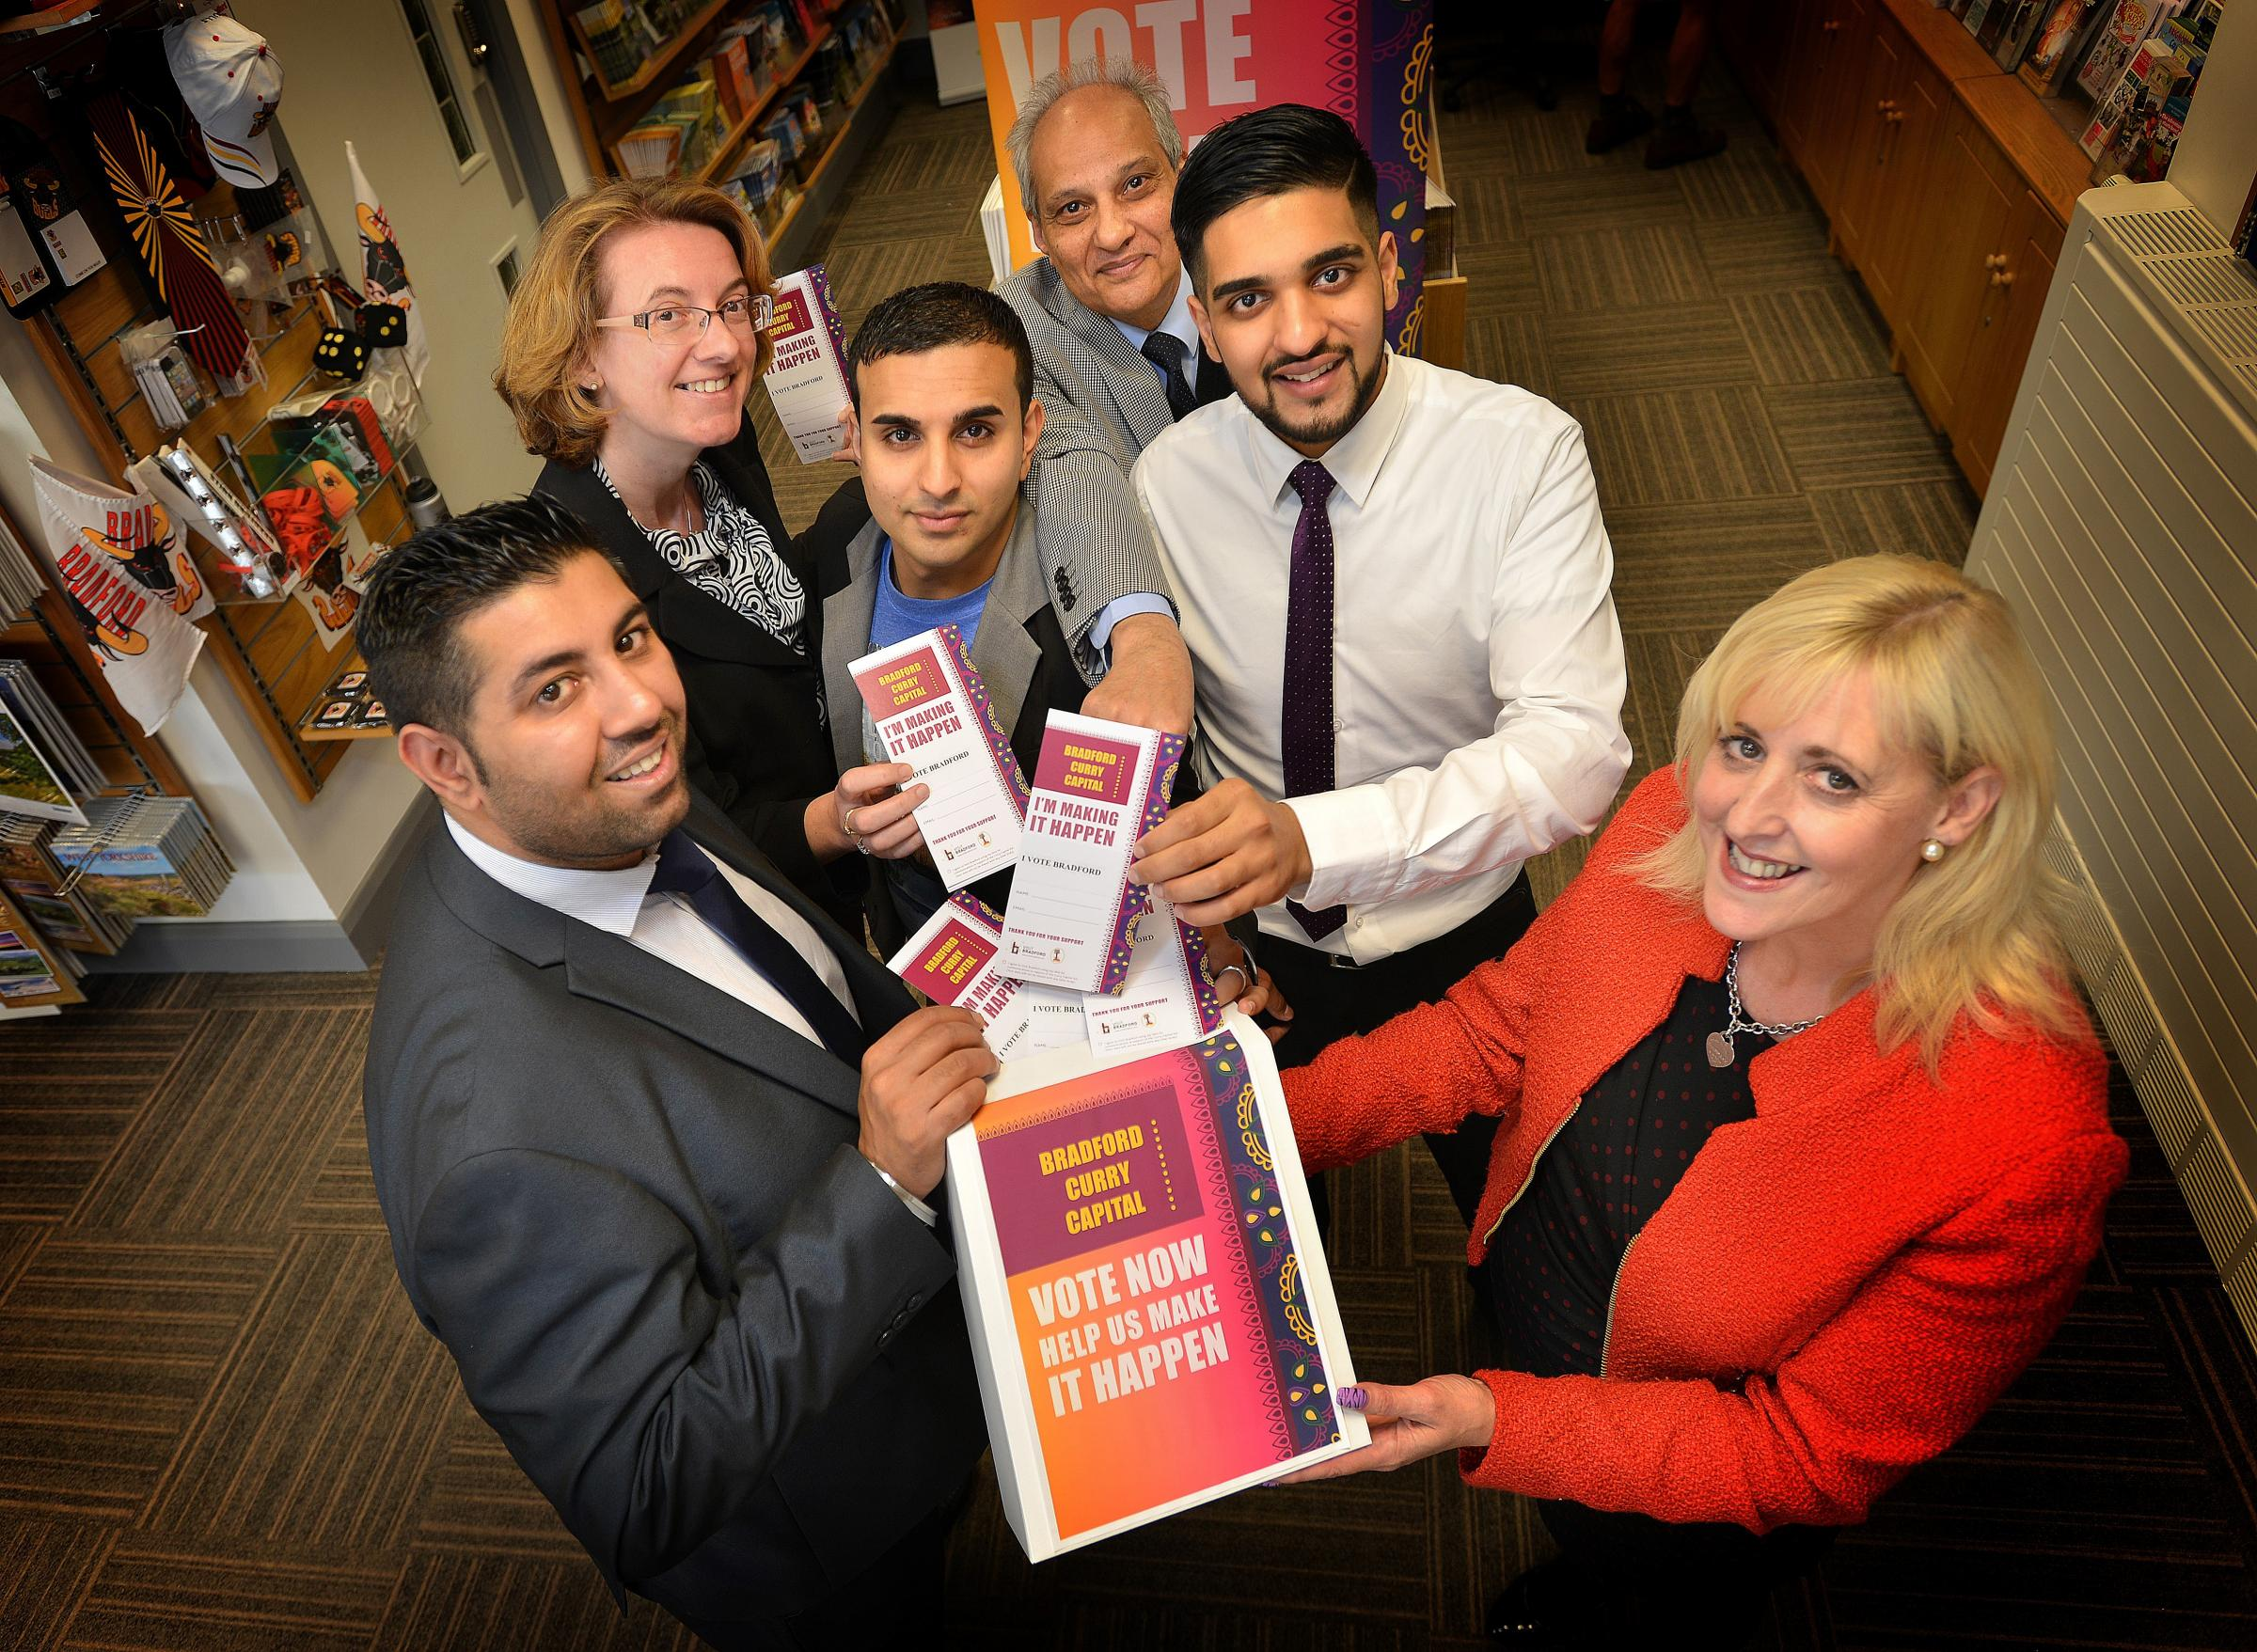 Book of diabetes-friendly recipes hoped to be novel way for Bradford to retain its Capital of Curry crown